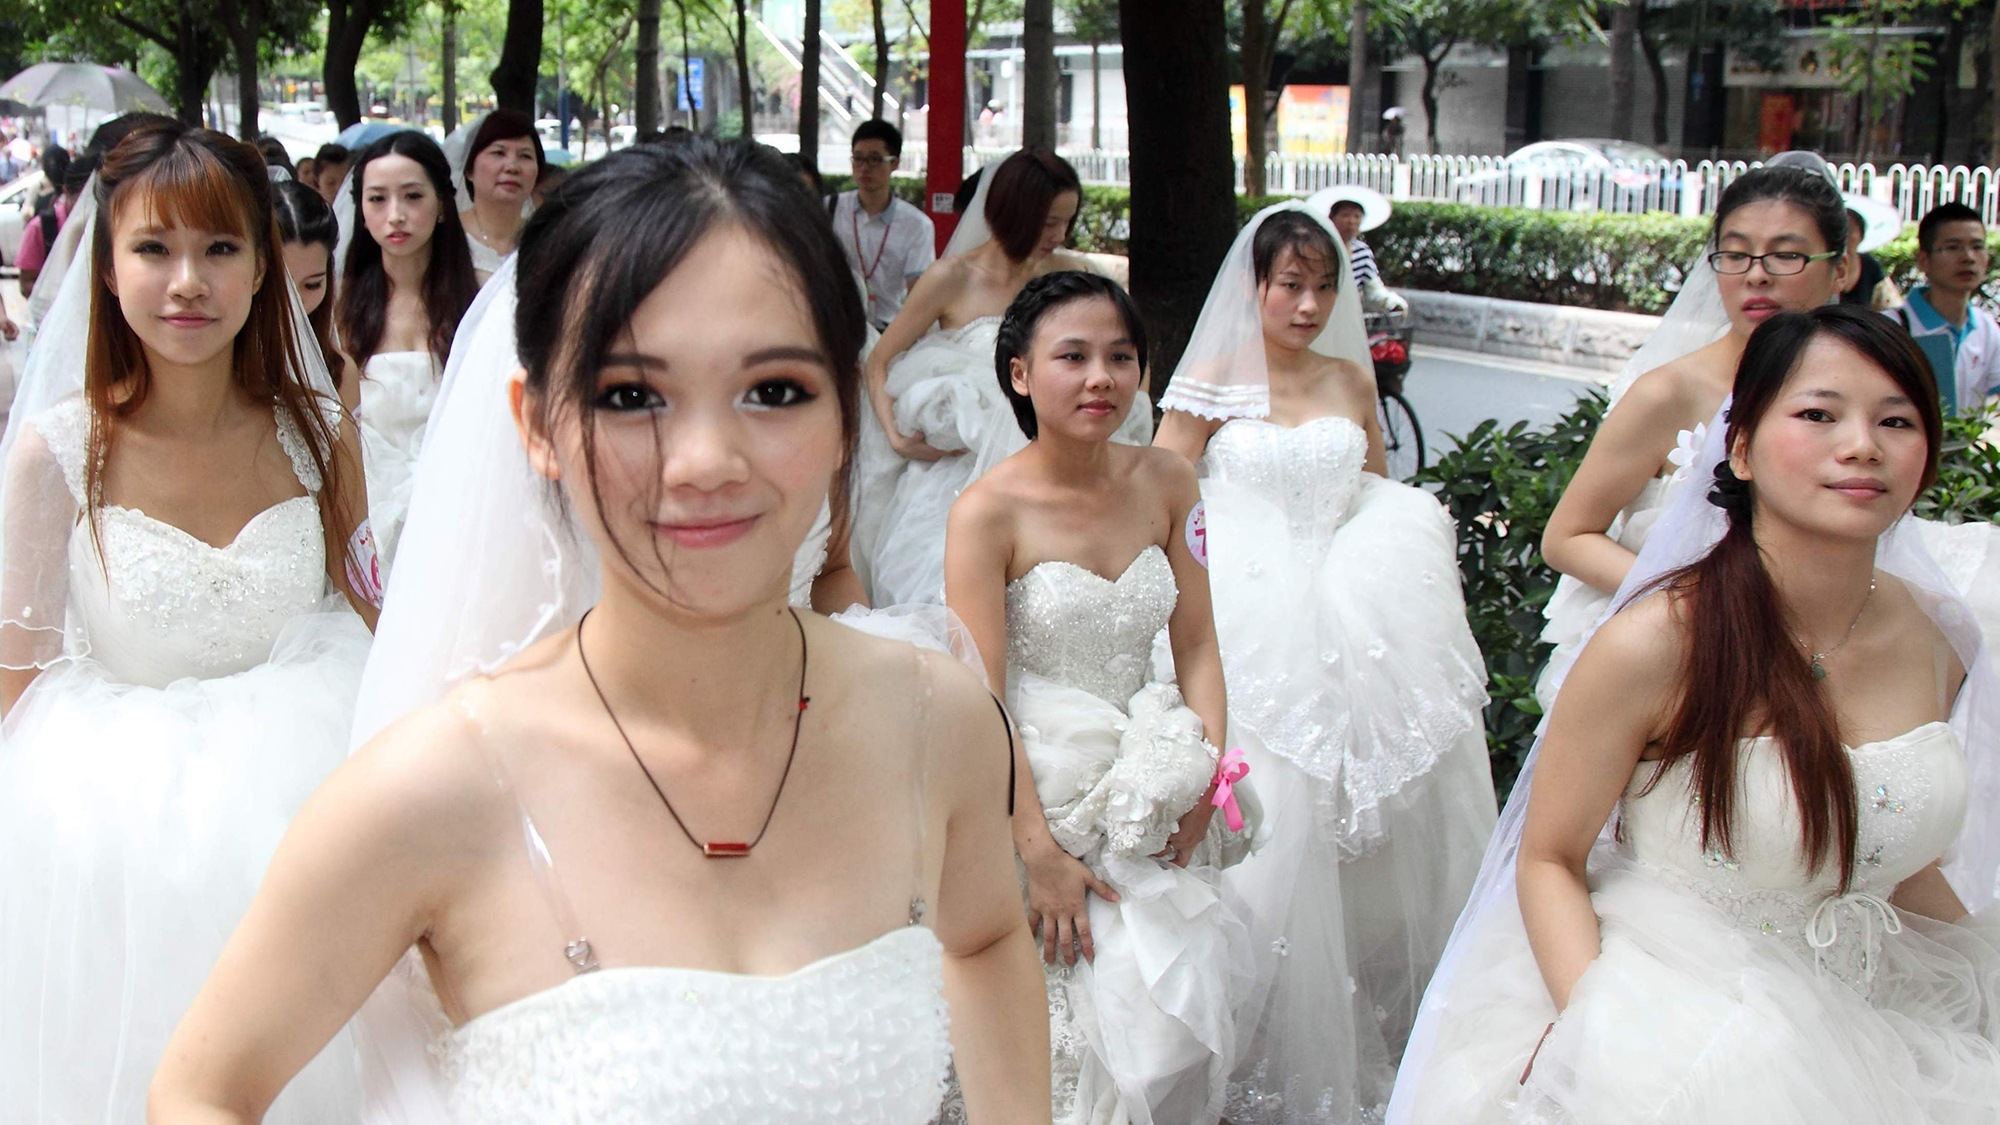 Why is being a bridesmaid in China dangerous